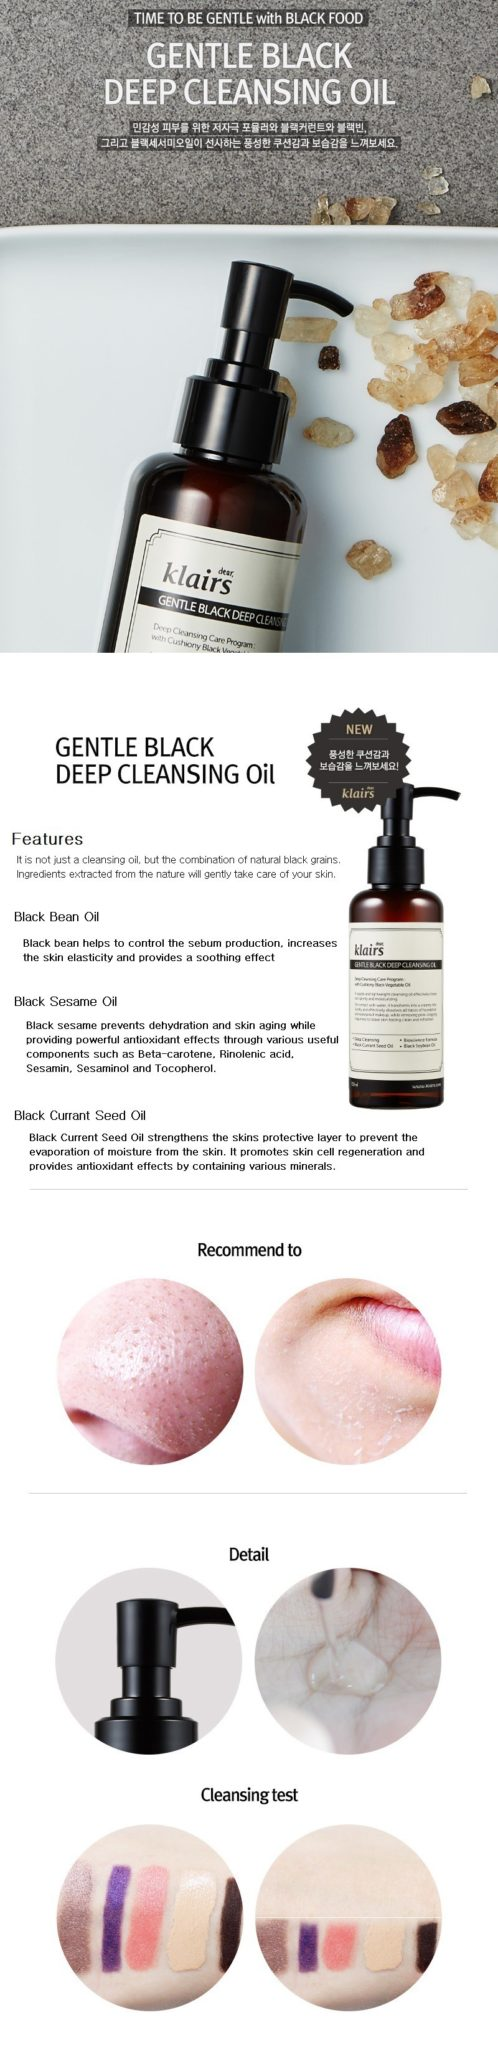 Image result for klairs gentle black deep cleansing oil